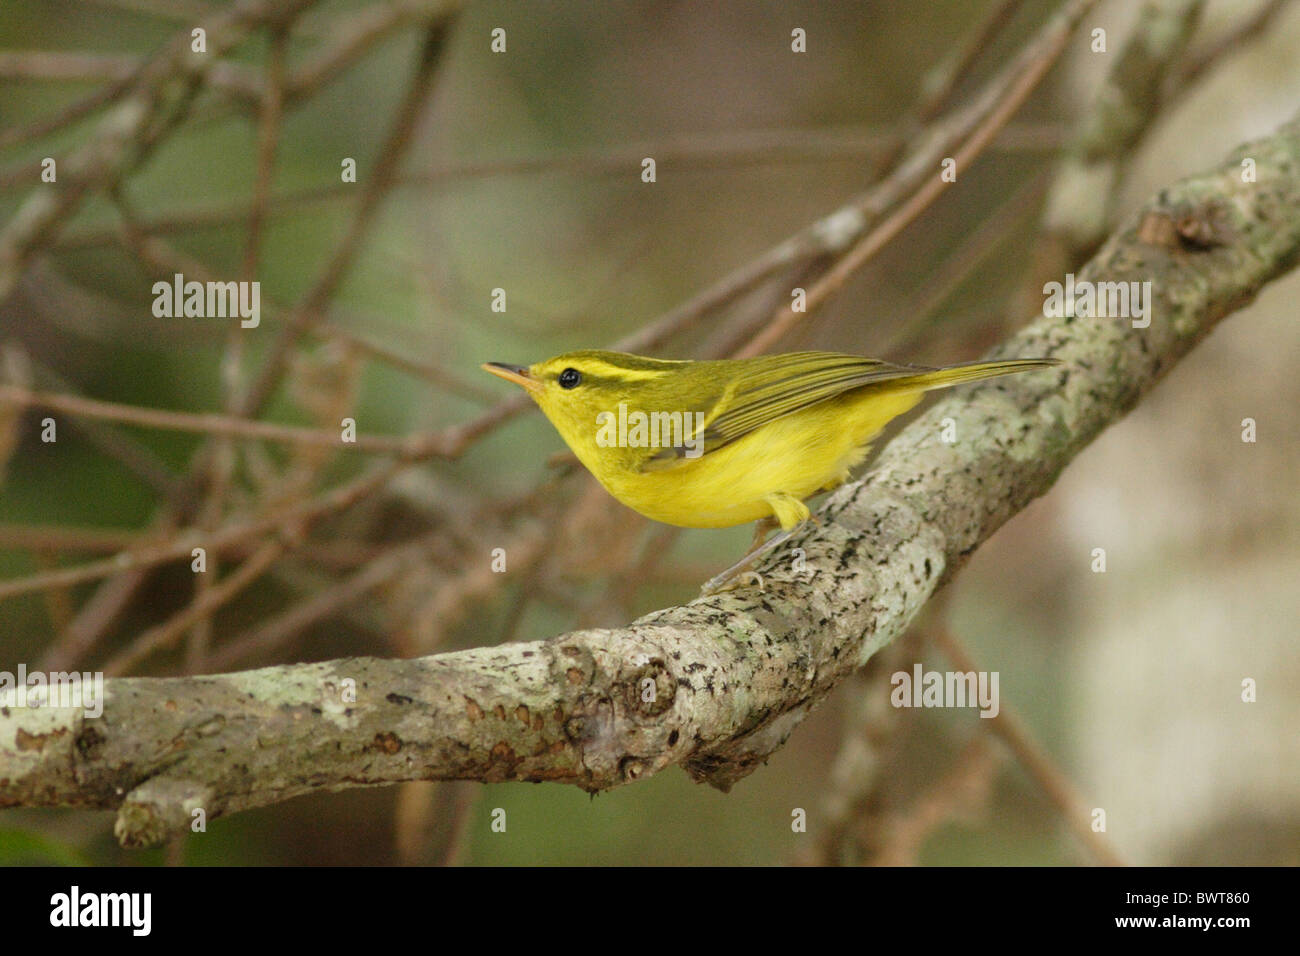 Hainan Endemic China yellow colourful bird birds animal animals warbler warblers asia asian wildlife nature passerine Stock Photo